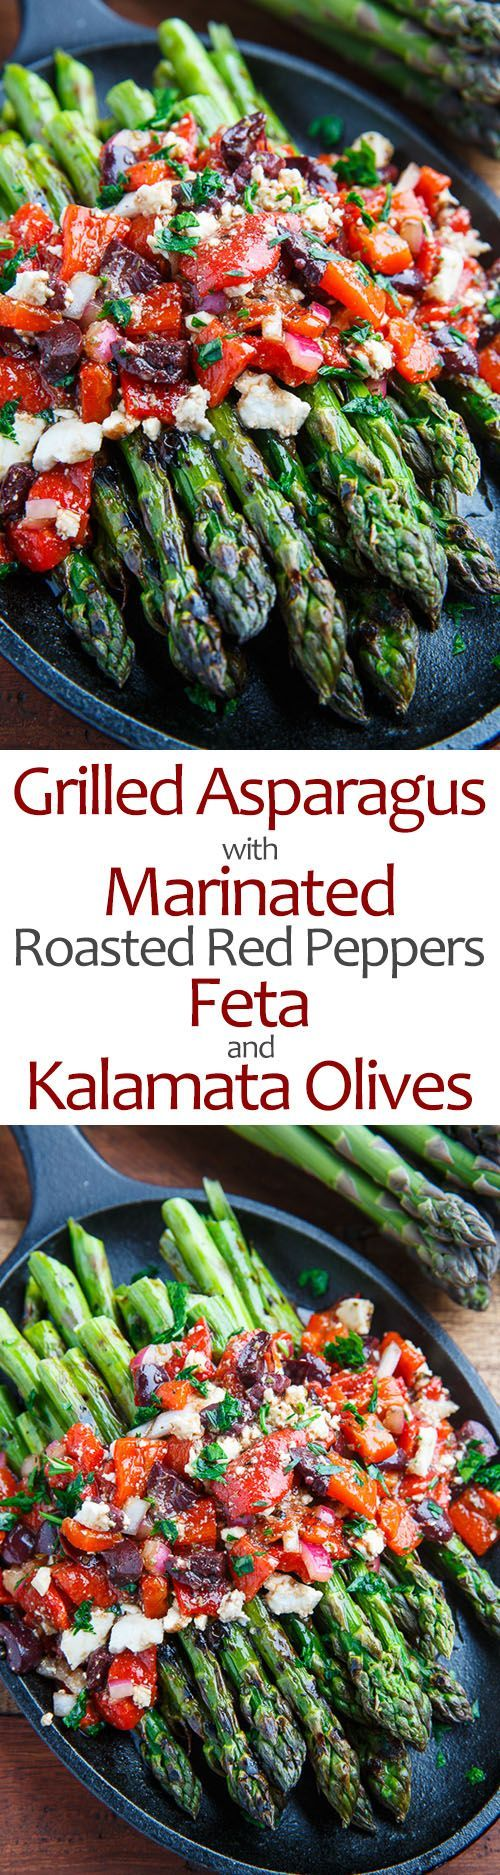 Roasted Red Pepper Pesto Pasta With Kalamata Olives And Feta Recipe ...